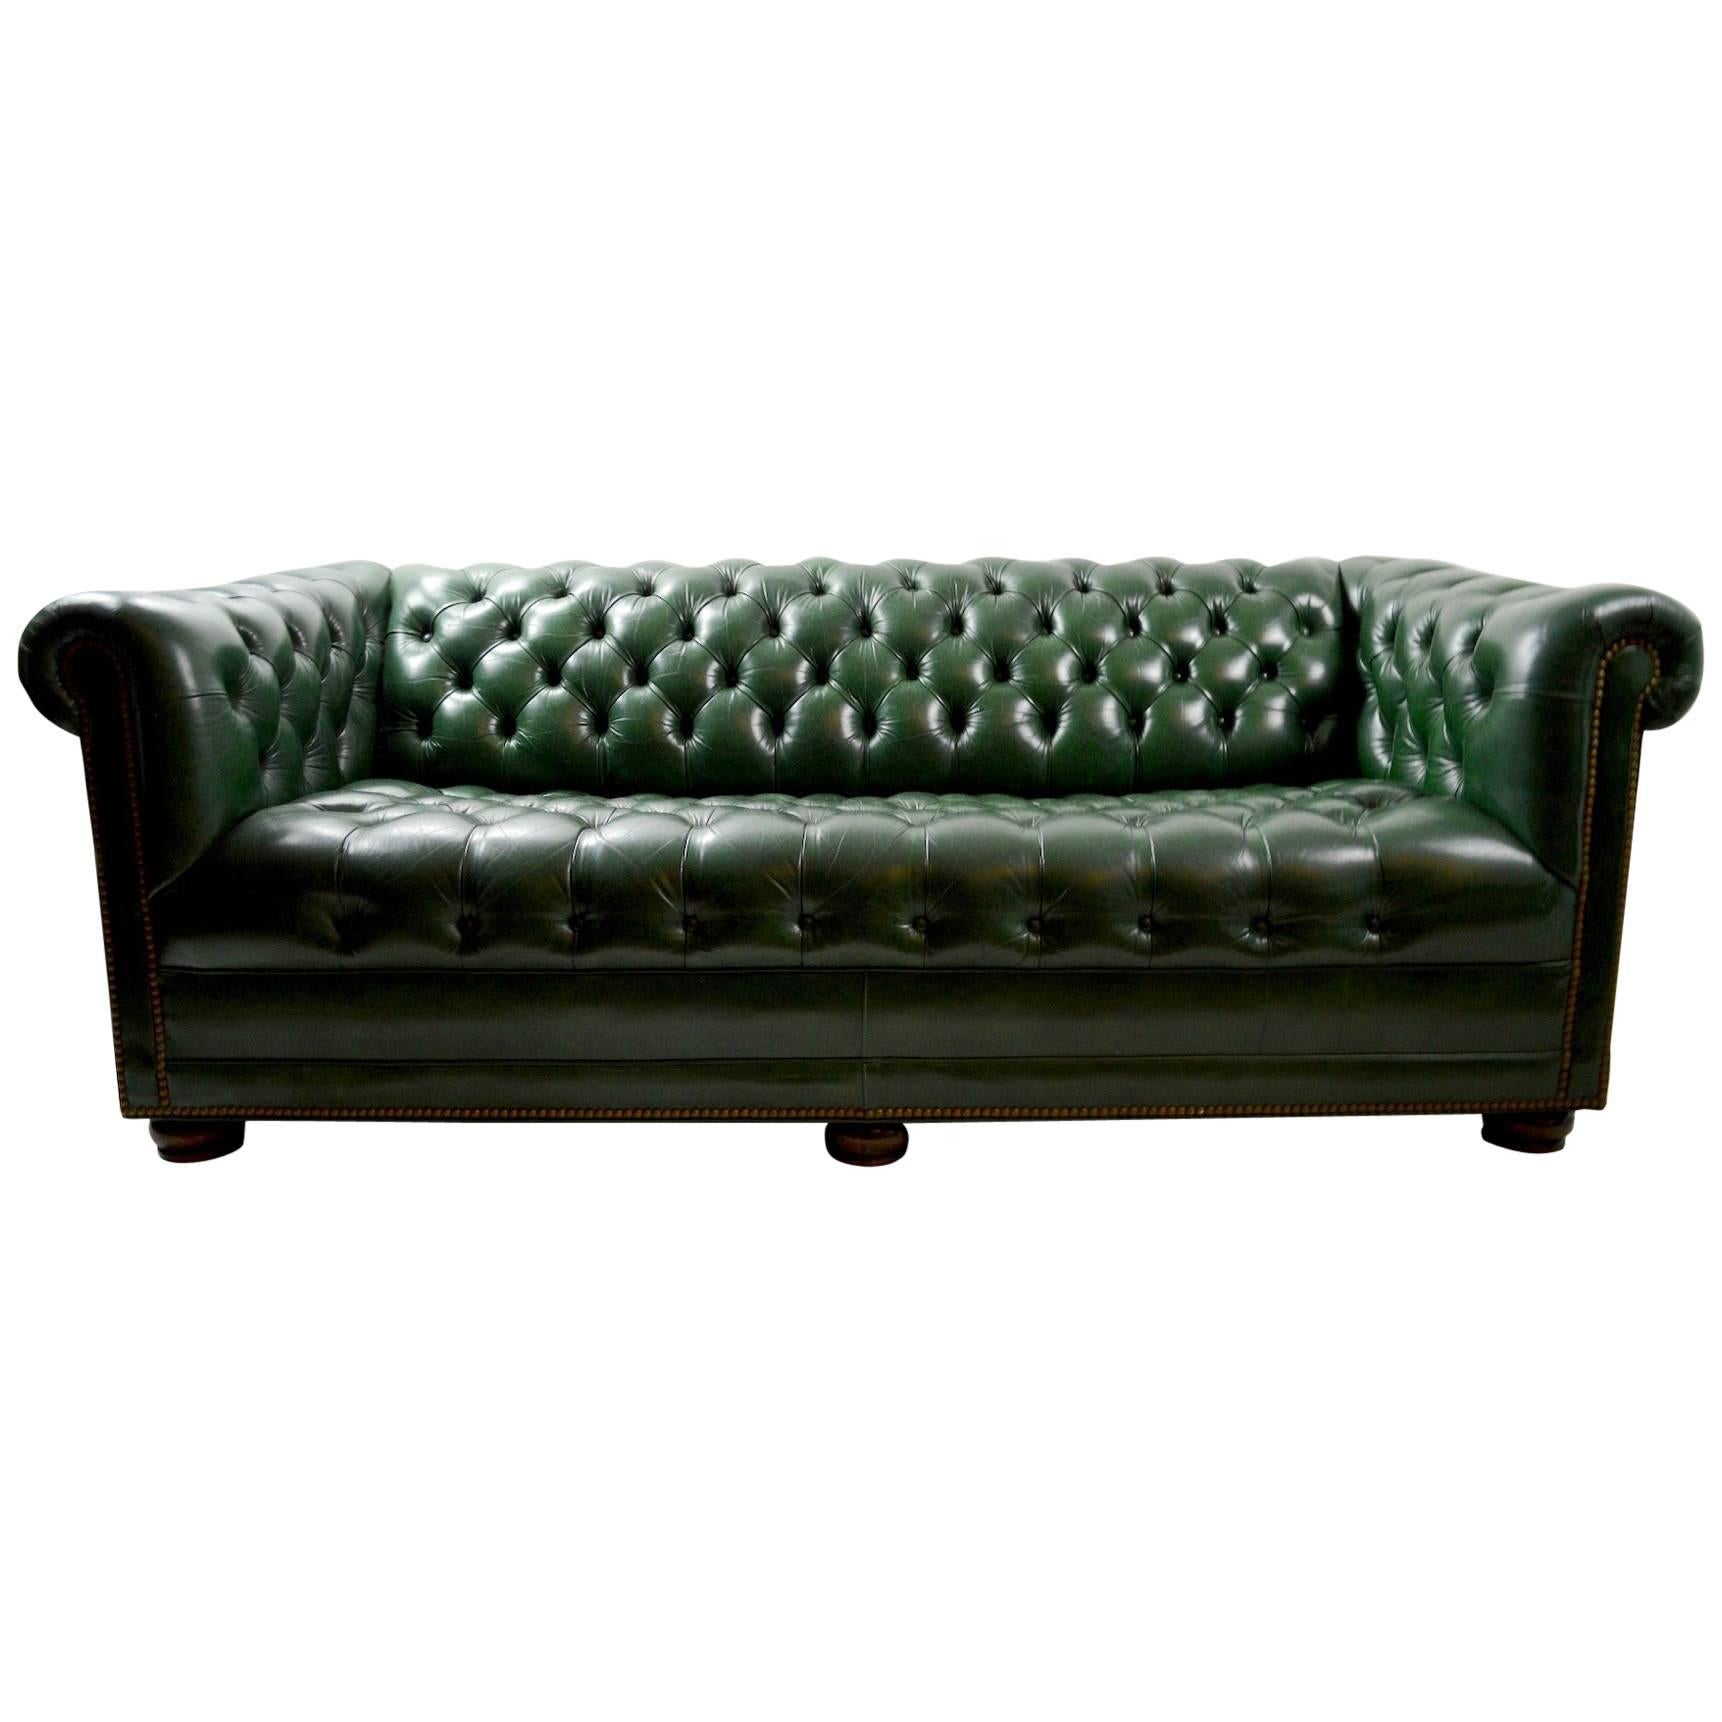 Leather Chesterfield Sofa By Hancock And Moore For Sale At 1stdibs